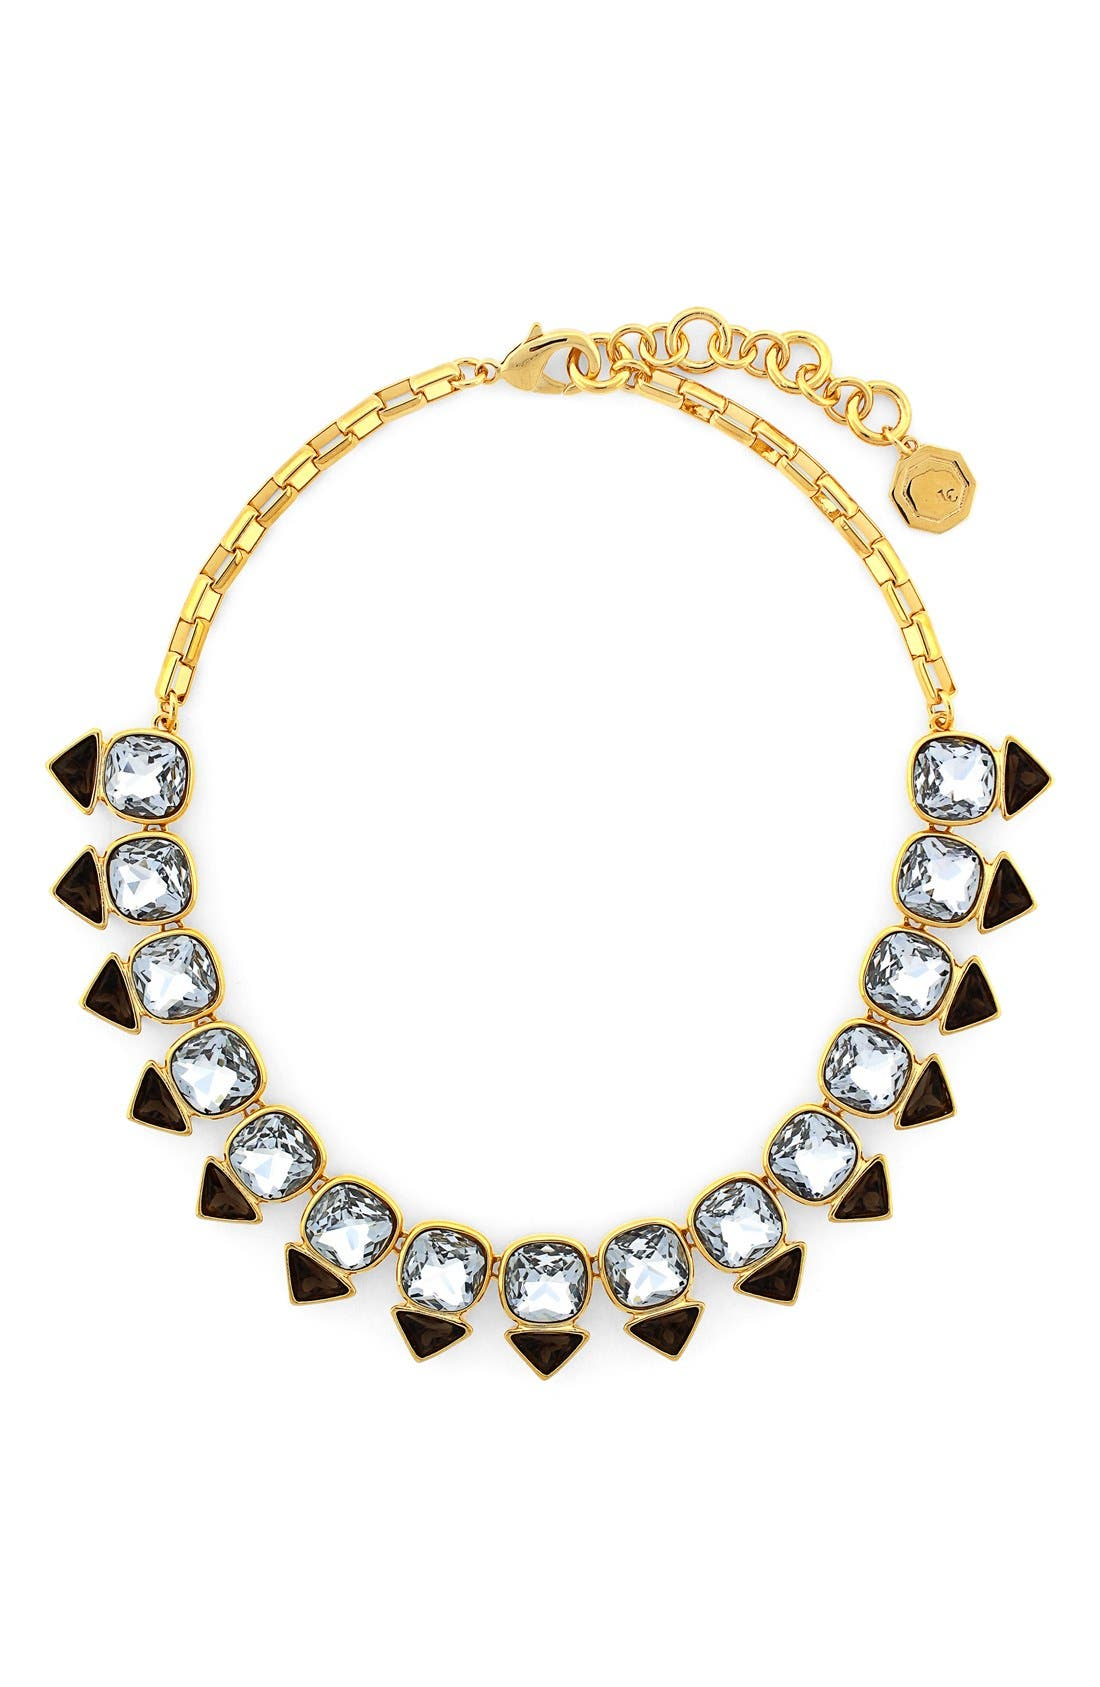 Main Image - Louise et Cie 'Indian Summer' Collar Necklace